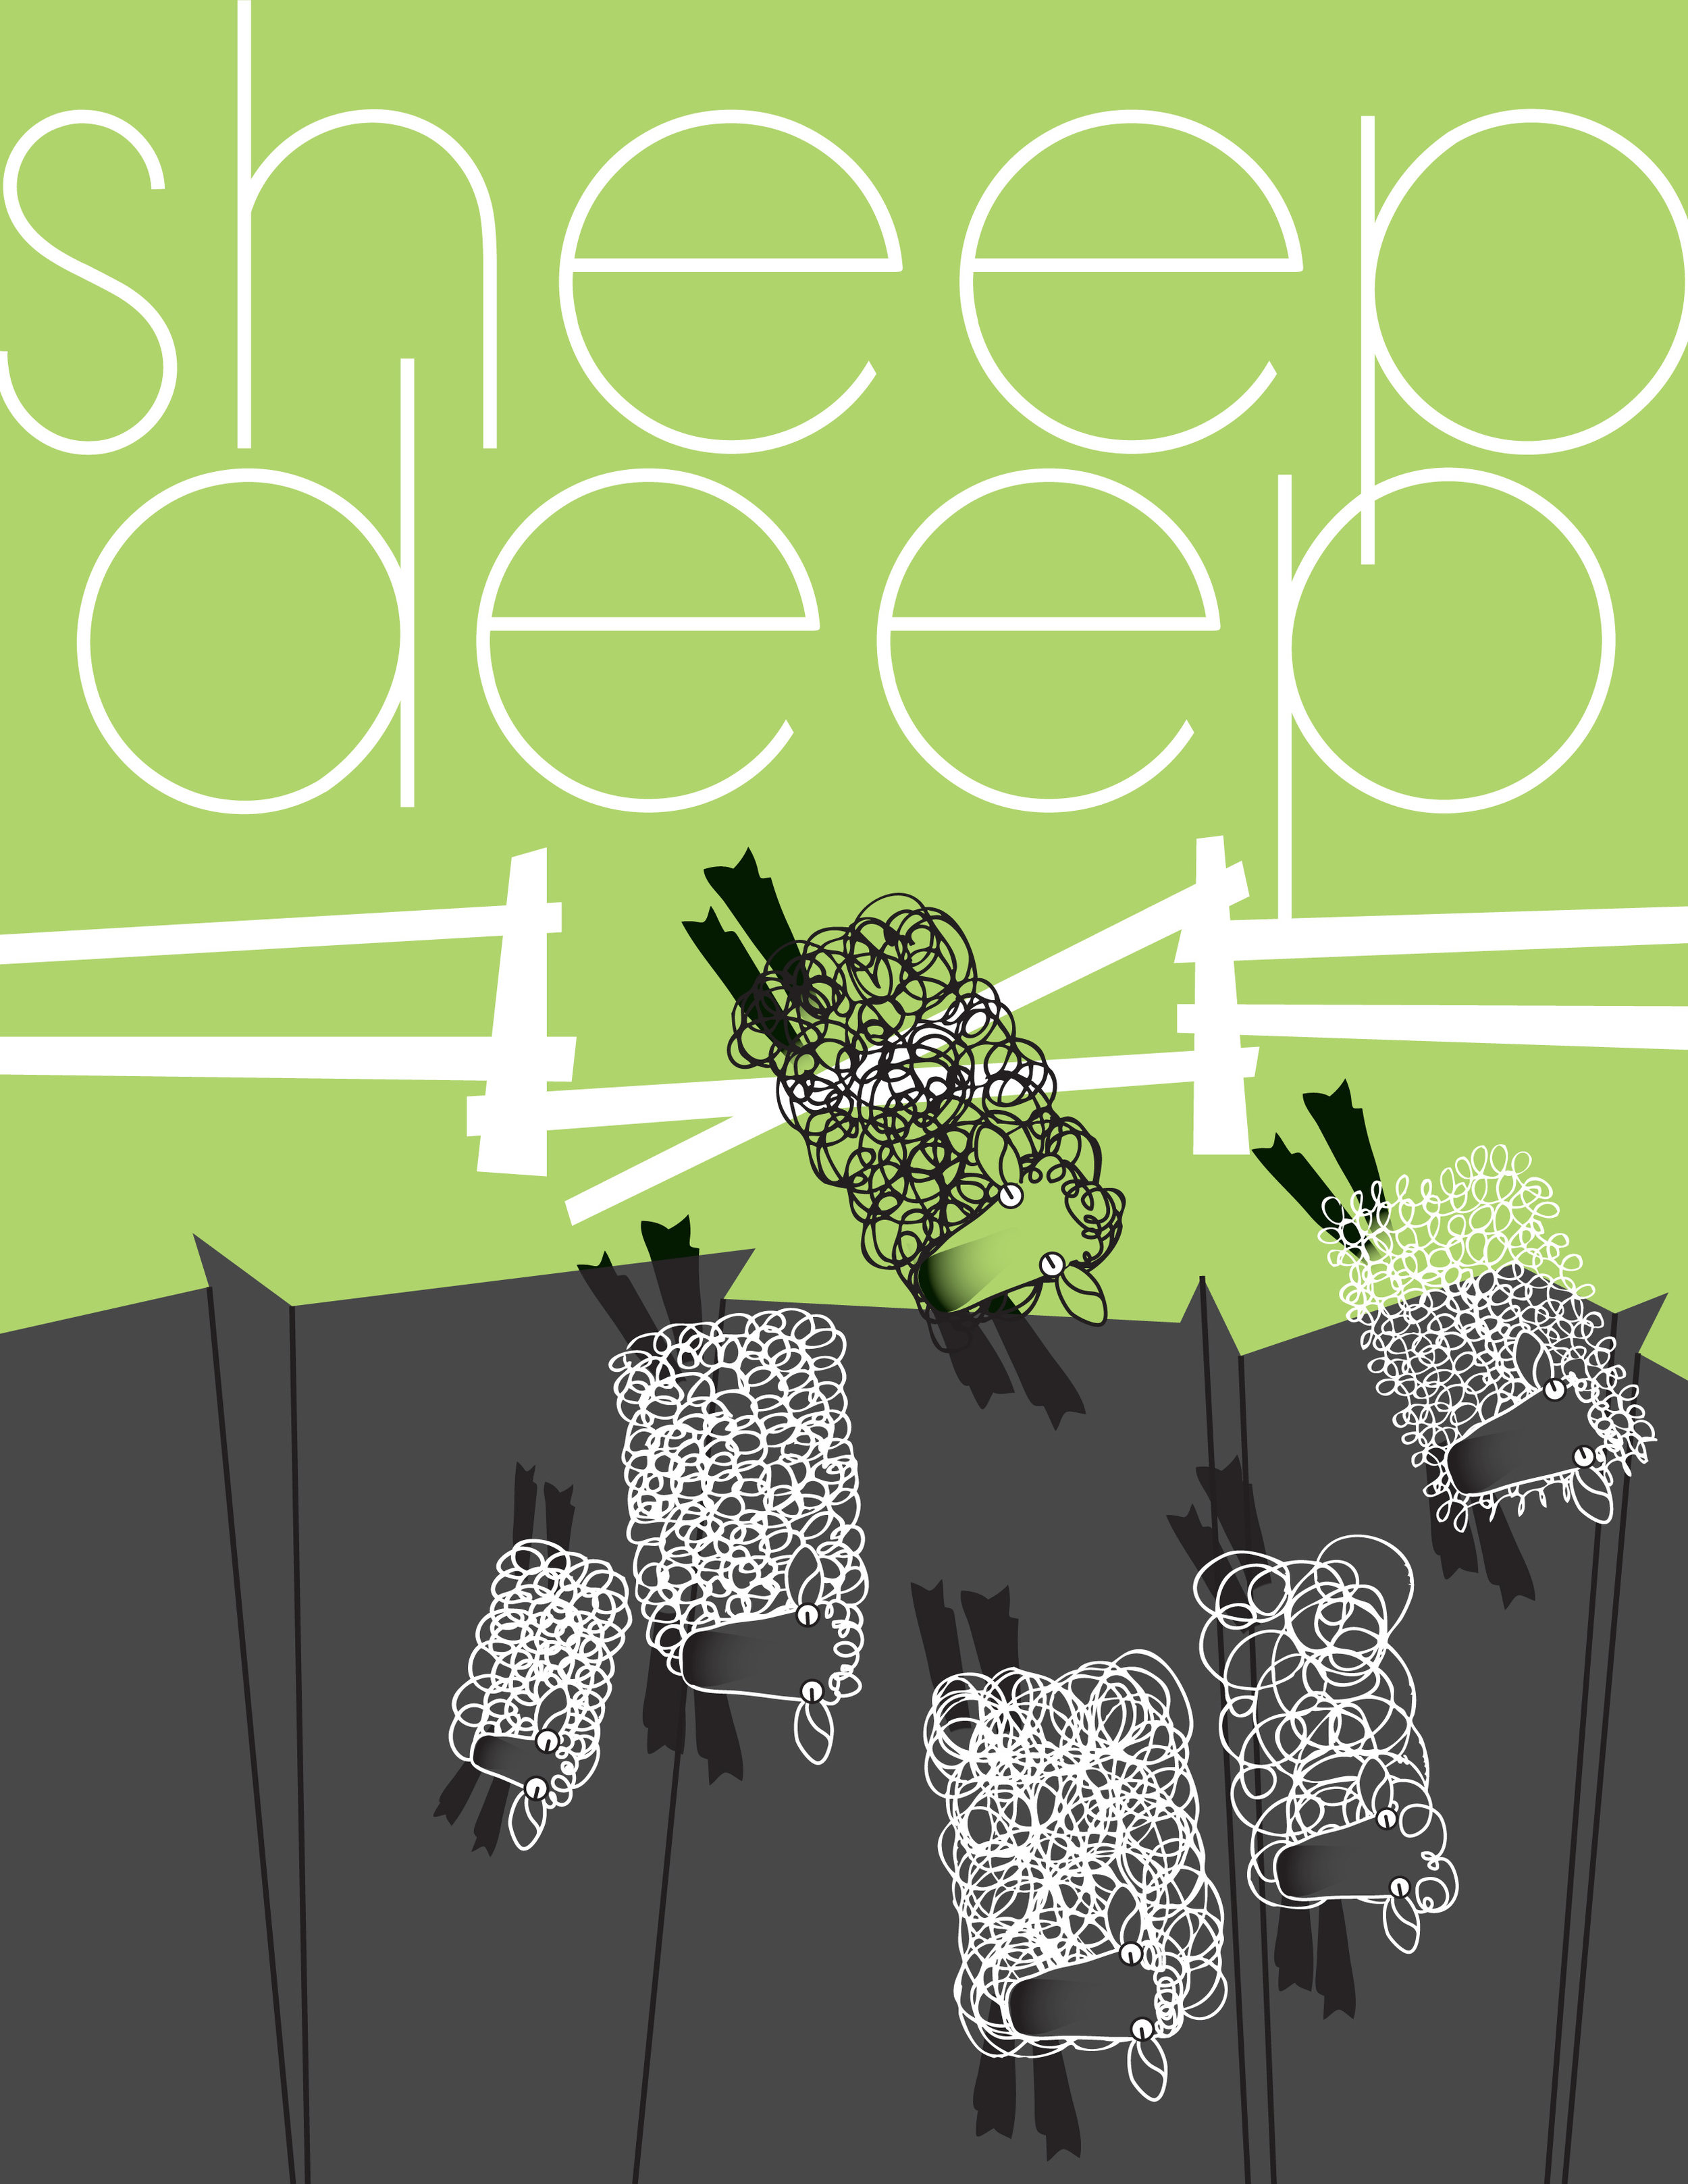 Sheep Sleep Book 2-6.jpg